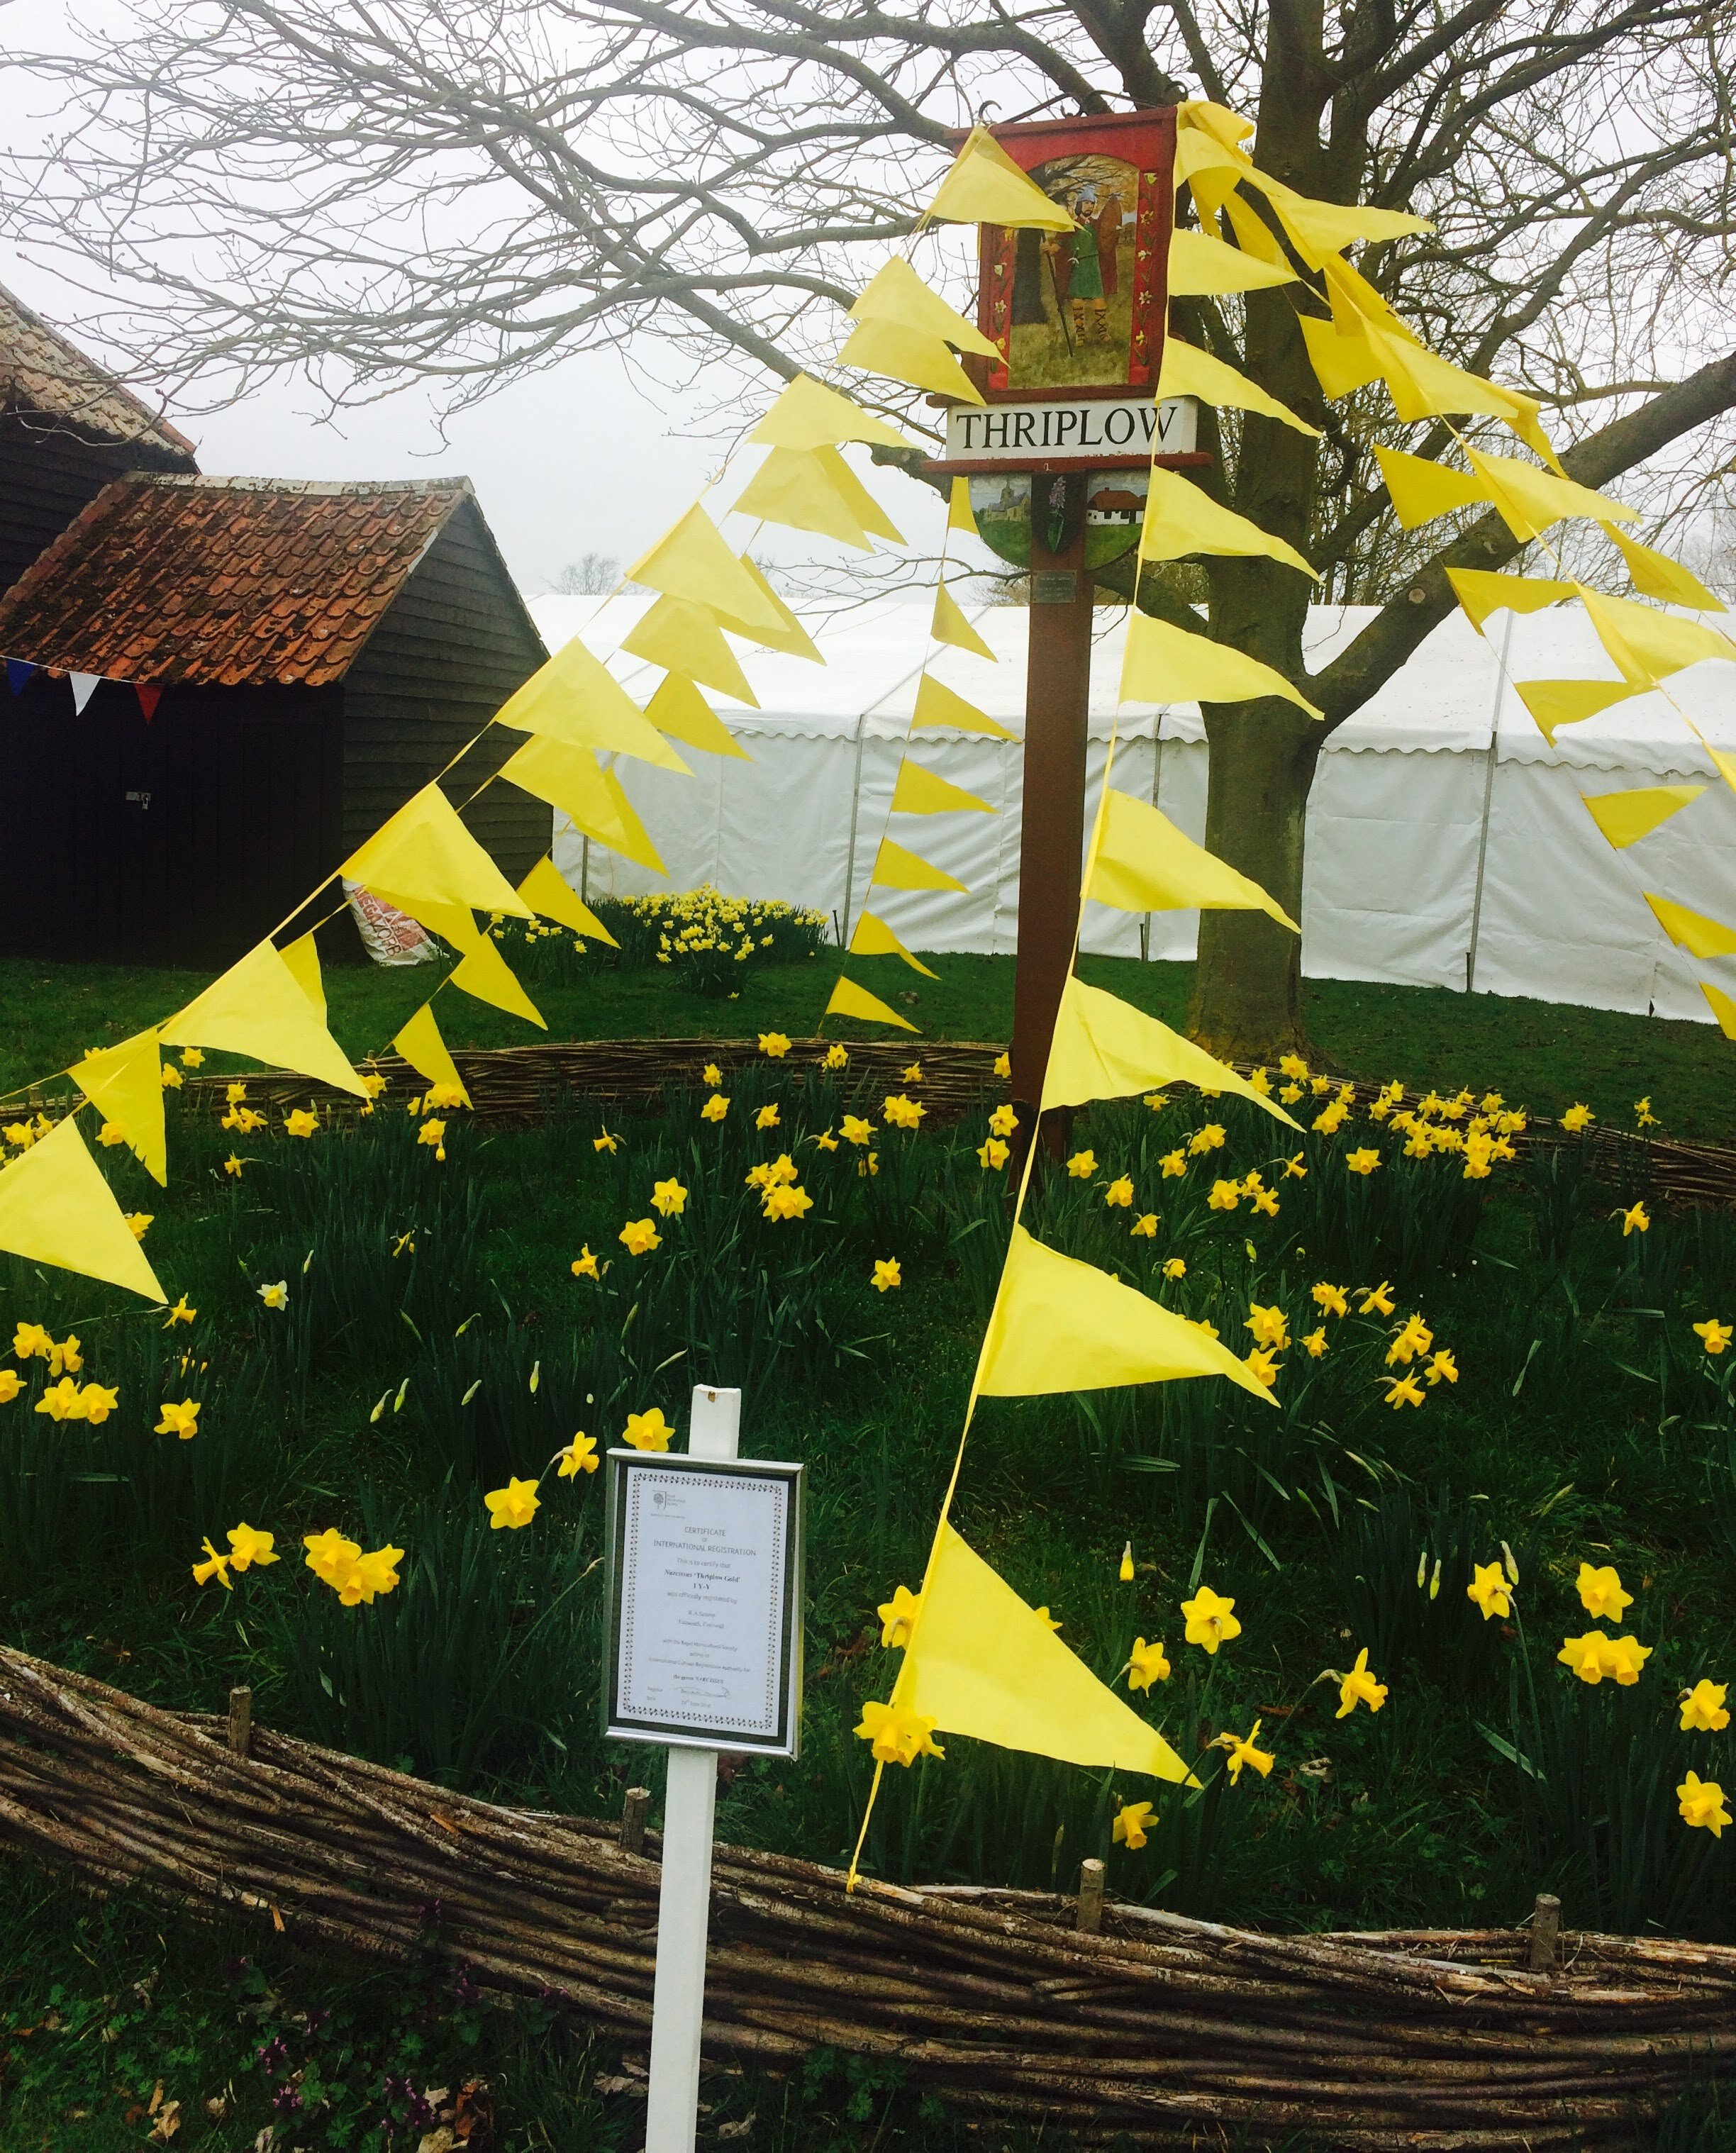 A day at Daffodil Weekend, Thriplow, for some R&D with Snap Elastic